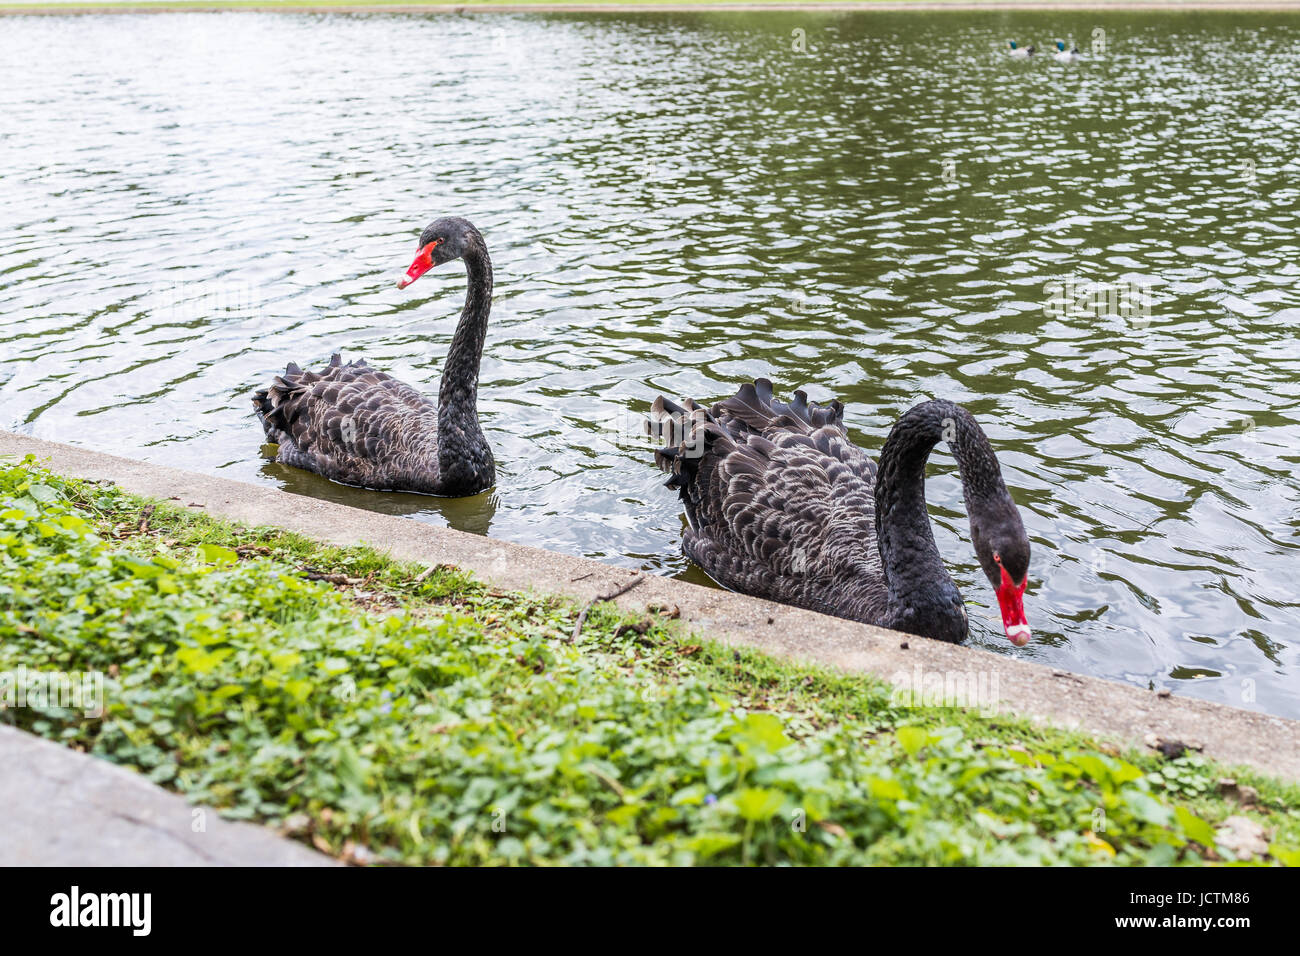 Two black swans with red beaks swimming in lake in park during summer Stock Photo